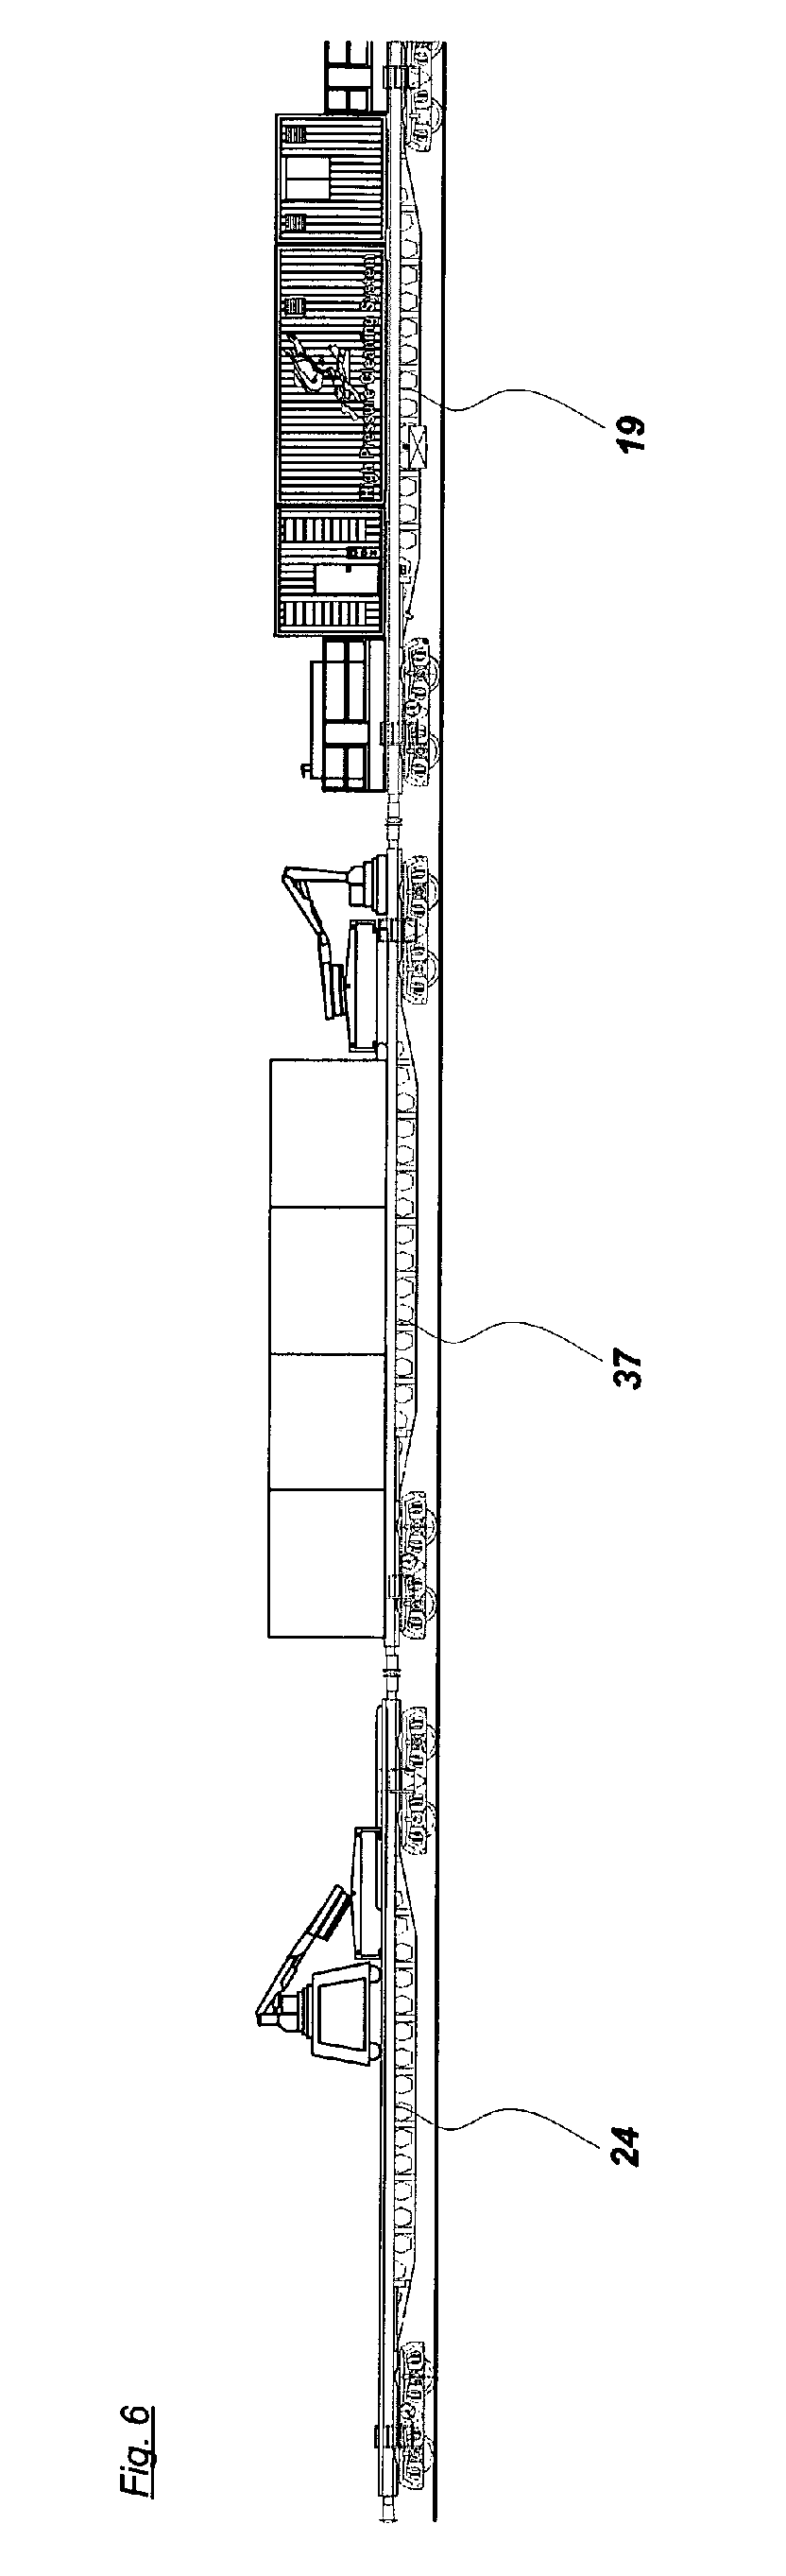 Patent EP1473409A1 - Method and device for treating sleepers ...